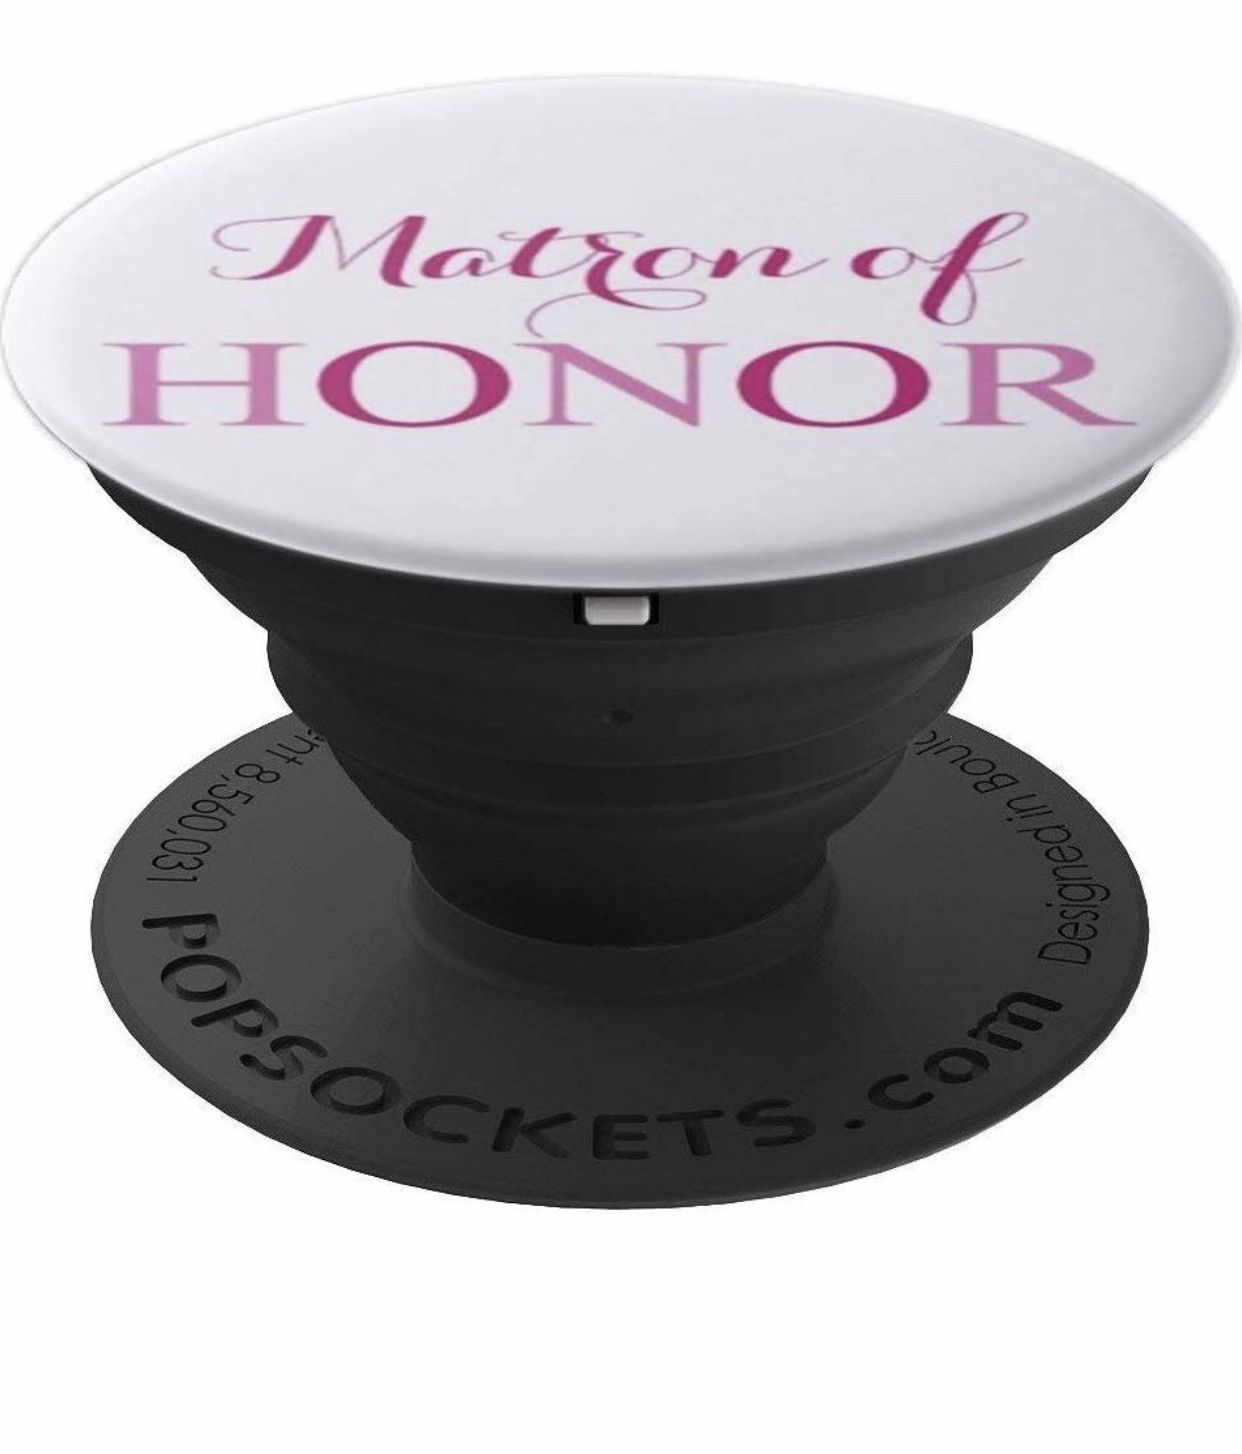 Matron of honor engagement newlywed gift popsockets grip